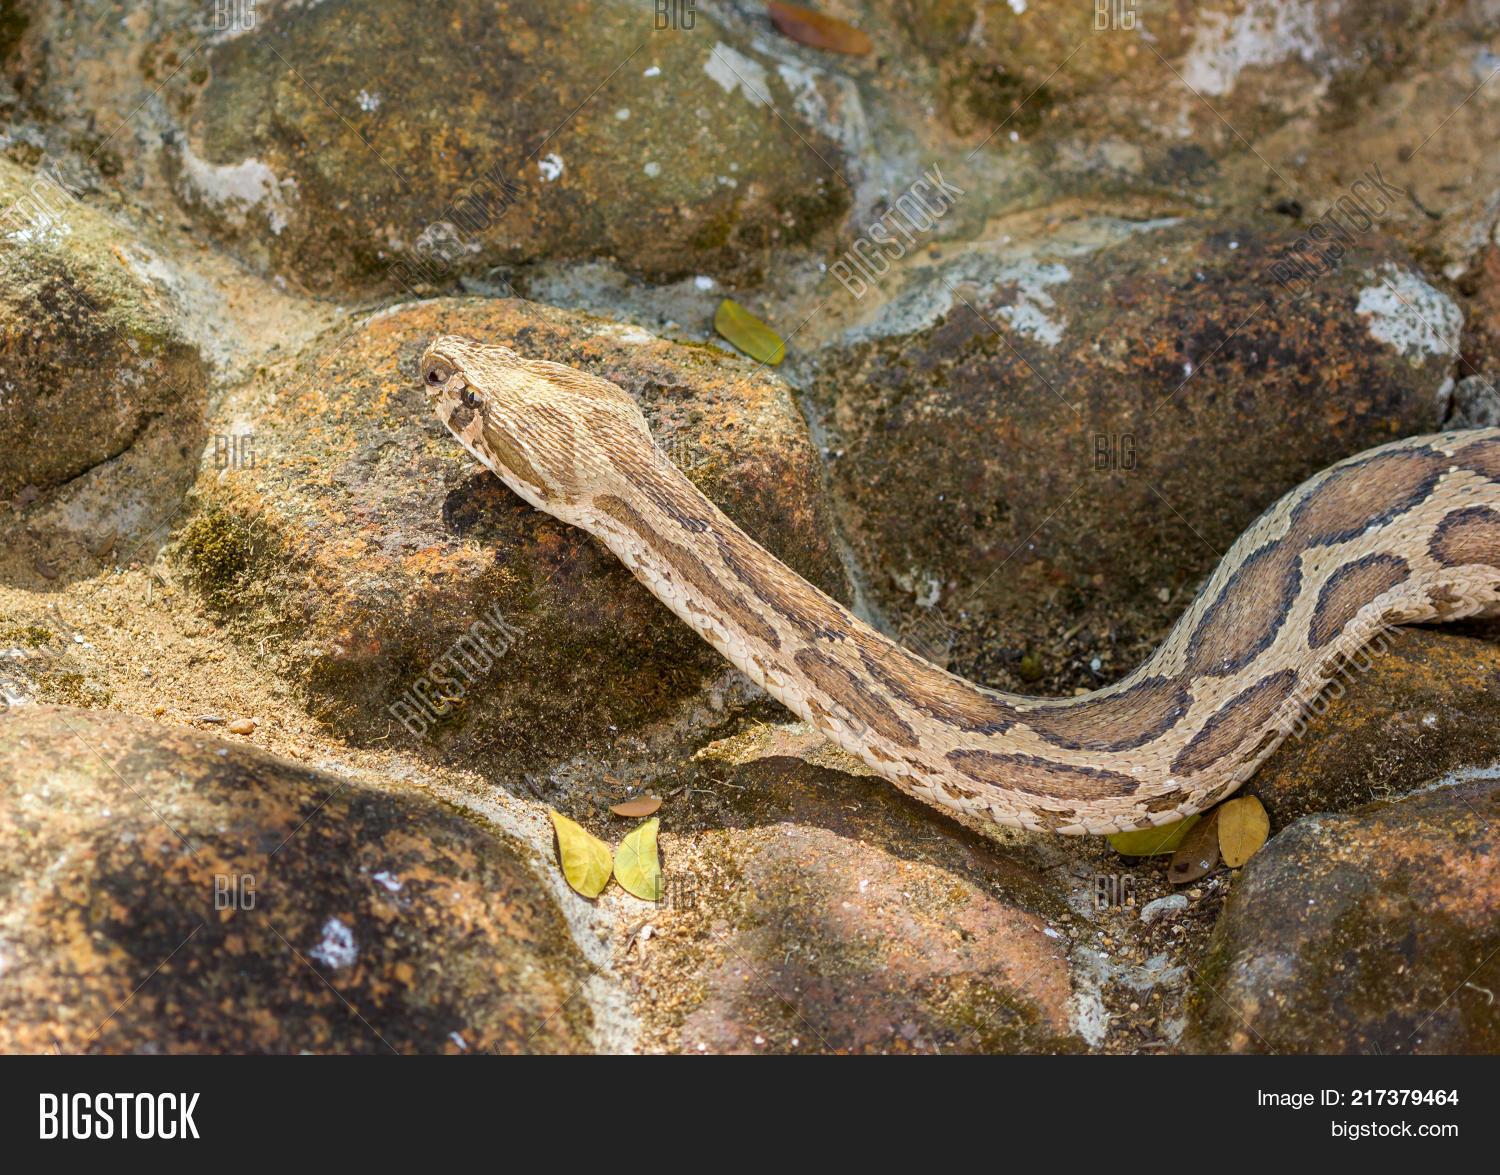 adder,animals,asia,asian,brown,carnivores,cold,cold-blooded,culture,danger,dangerous,deadly,hemotoxic,hunters,hunting,india,indian,nadu,poison,poisonous,predators,reptile,reptillian,russelii,russell,scaled,snake,south,tamil,unsafe,venemous,venom,venomous,vicious,viper